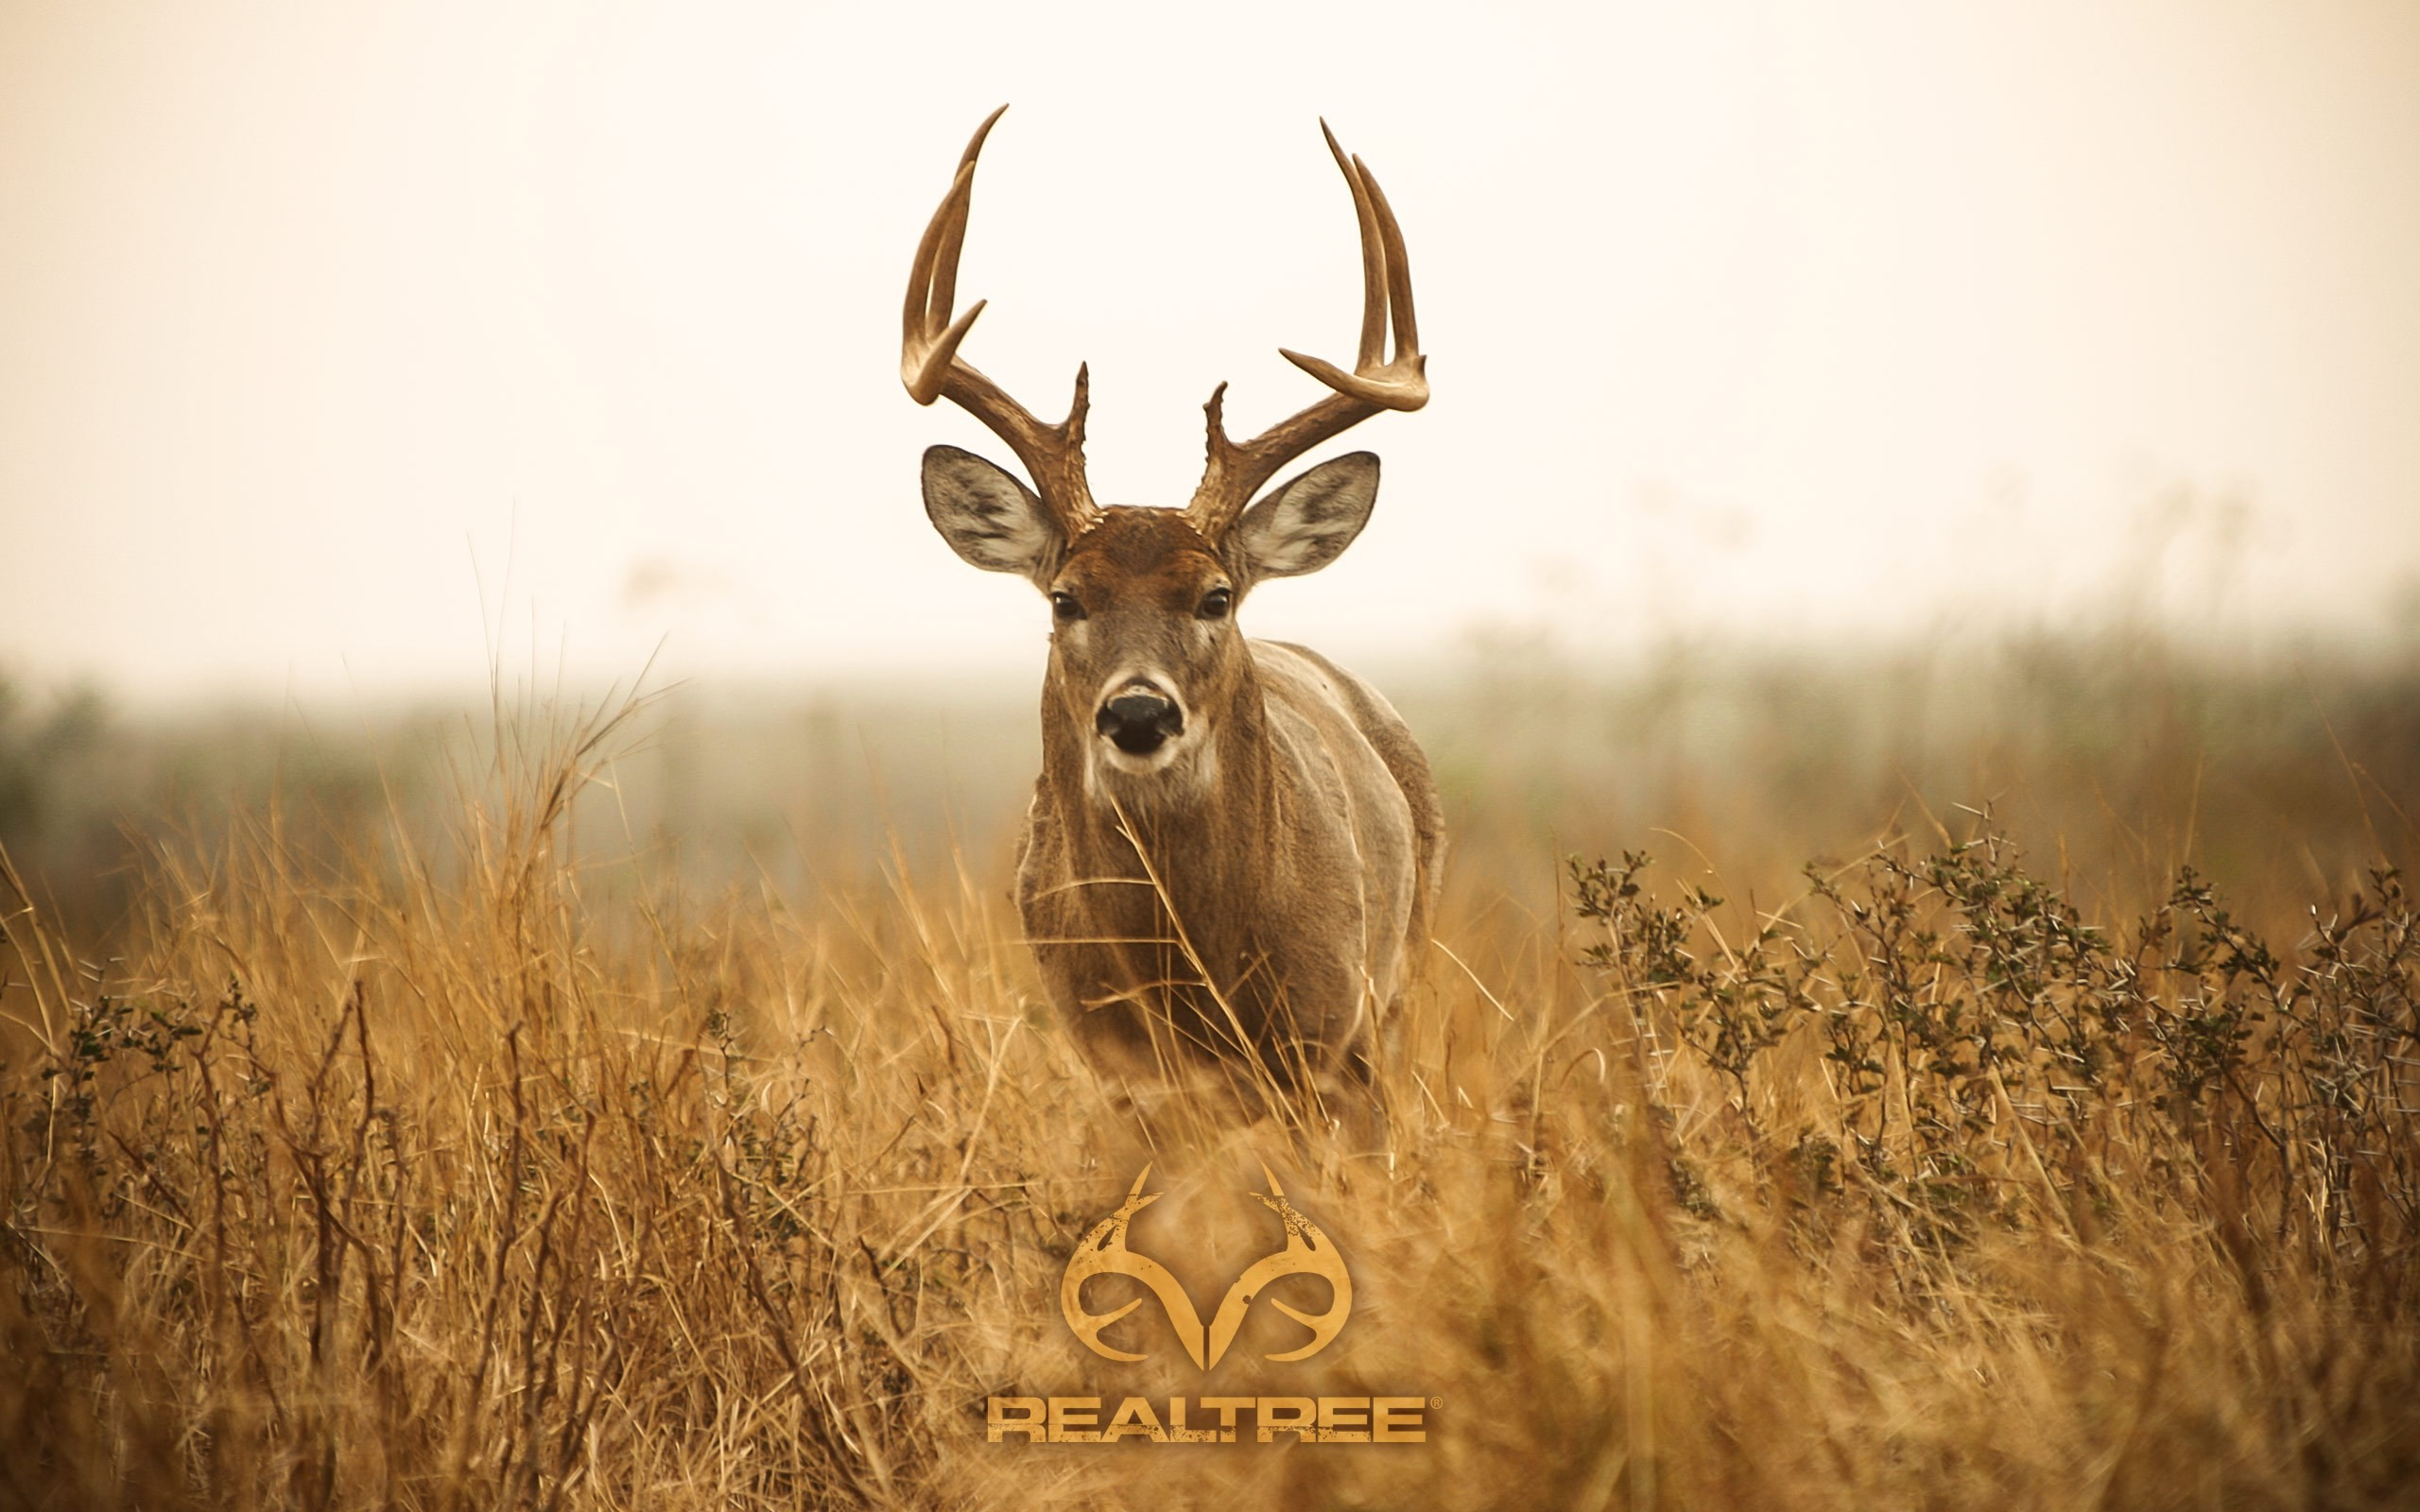 best-realtree-images-download-wallpaper-wp4002617